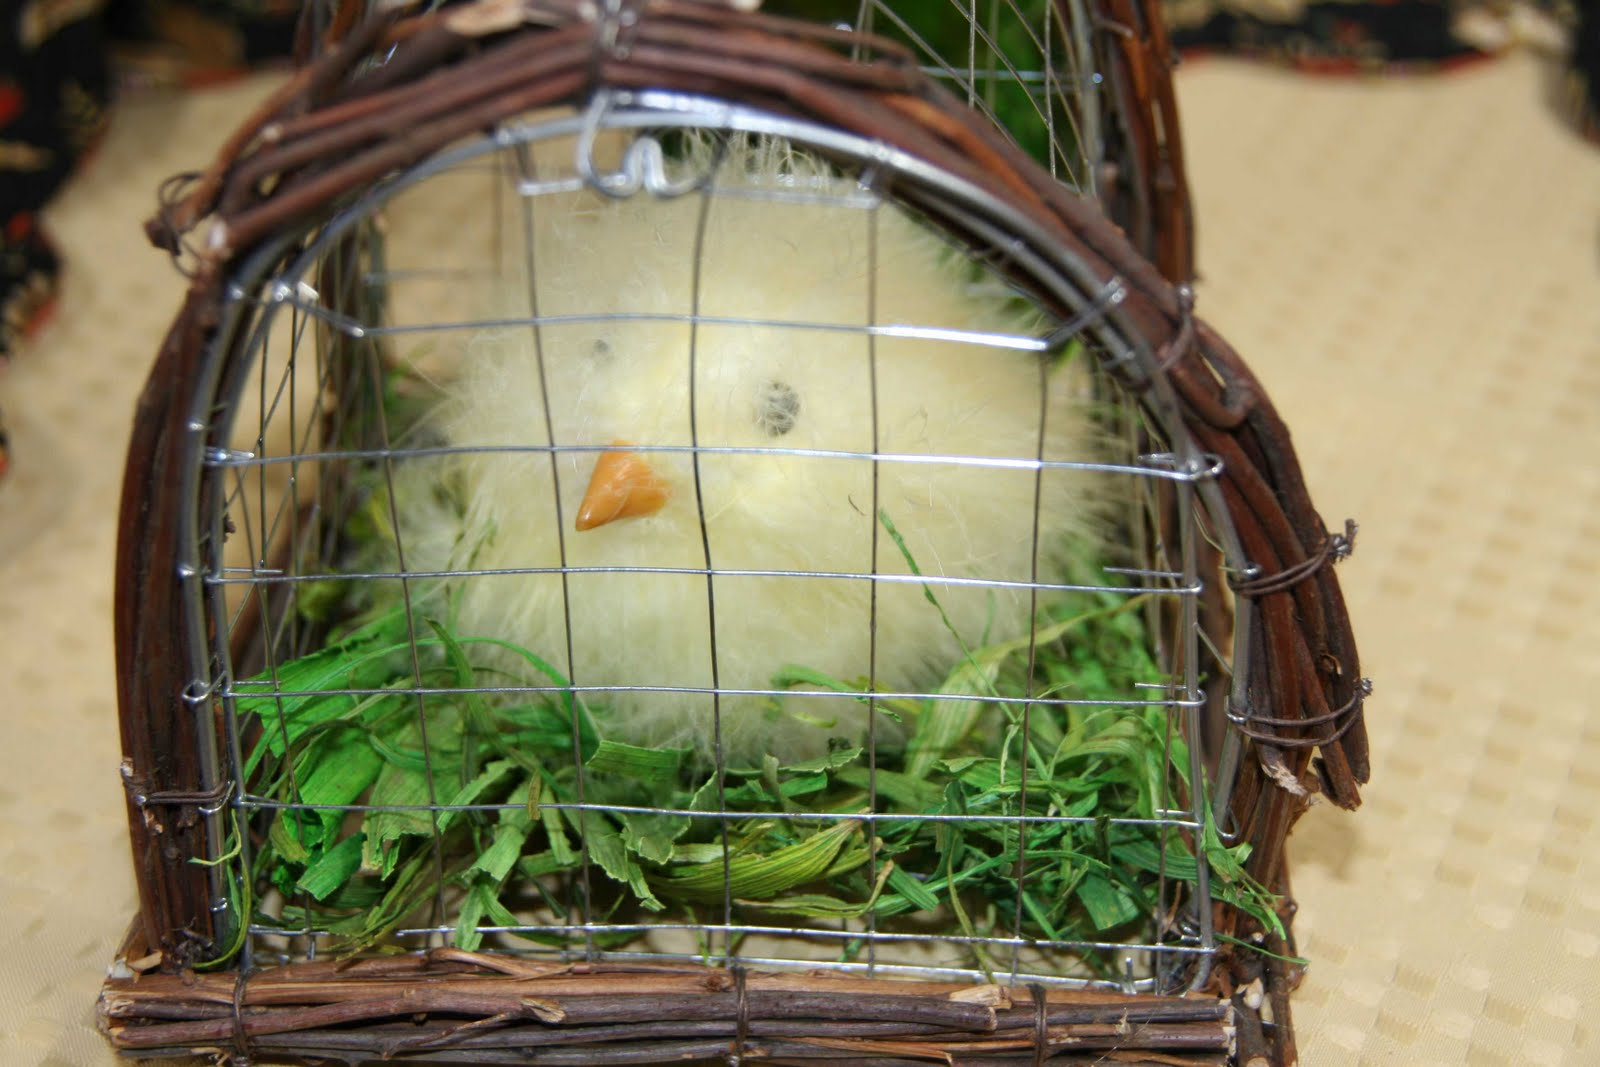 http://1.bp.blogspot.com/_h6D13_4JxwA/S6z4vSzVPzI/AAAAAAAAGFY/hwRyosA-lNg/s1600/CHICKEN-FOR-EASTER-IN-CAGE.jpg